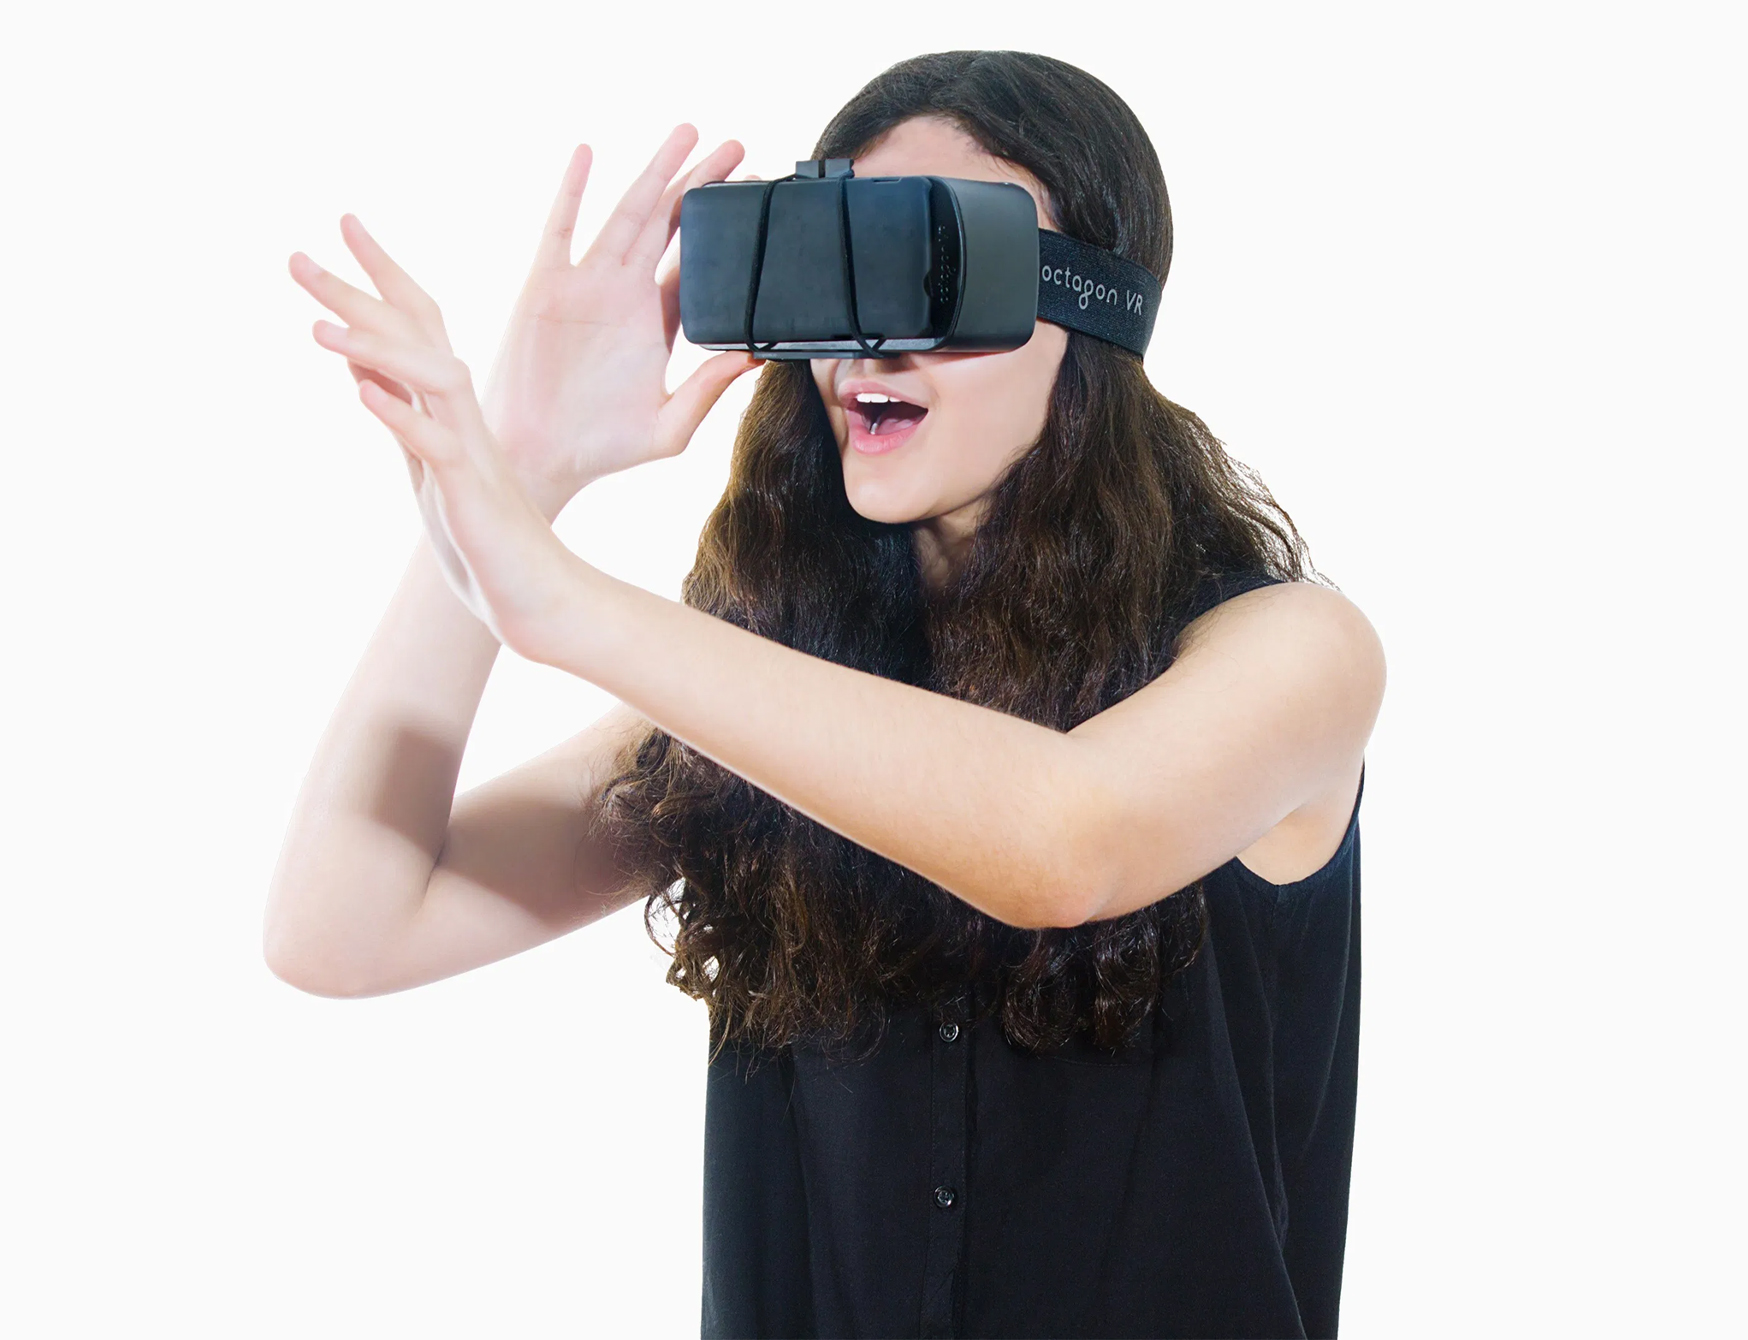 VR Headset – Immersive Multimedia in Entertainment